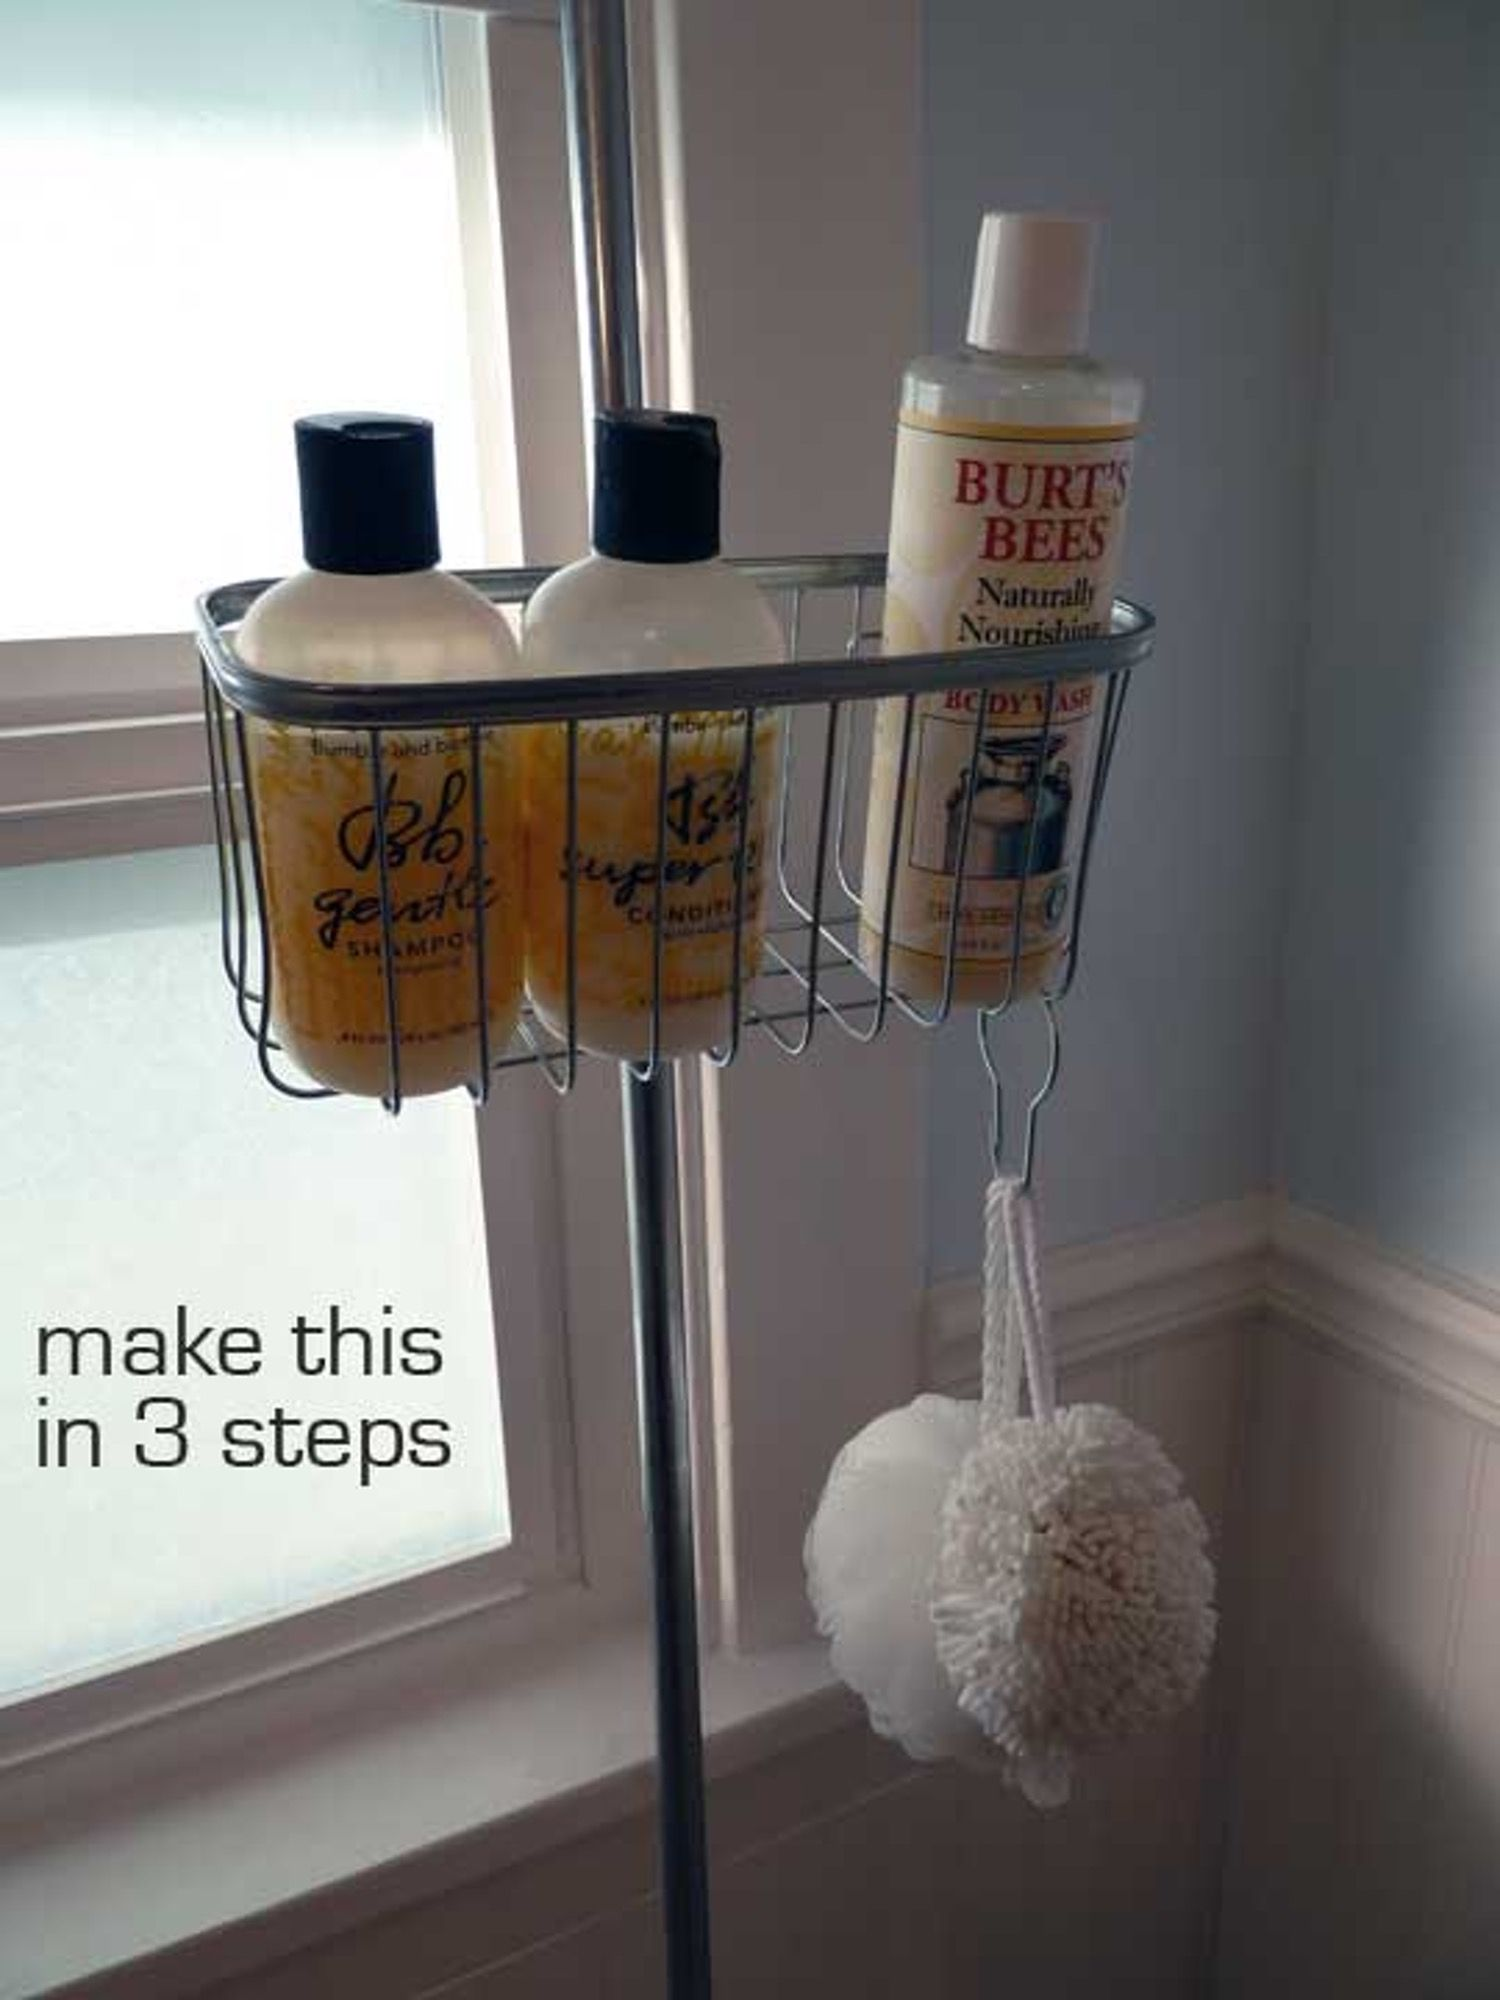 How To RiserMounted Shower Caddy For Clawfoot Tub Shower - Accessories for clawfoot tub